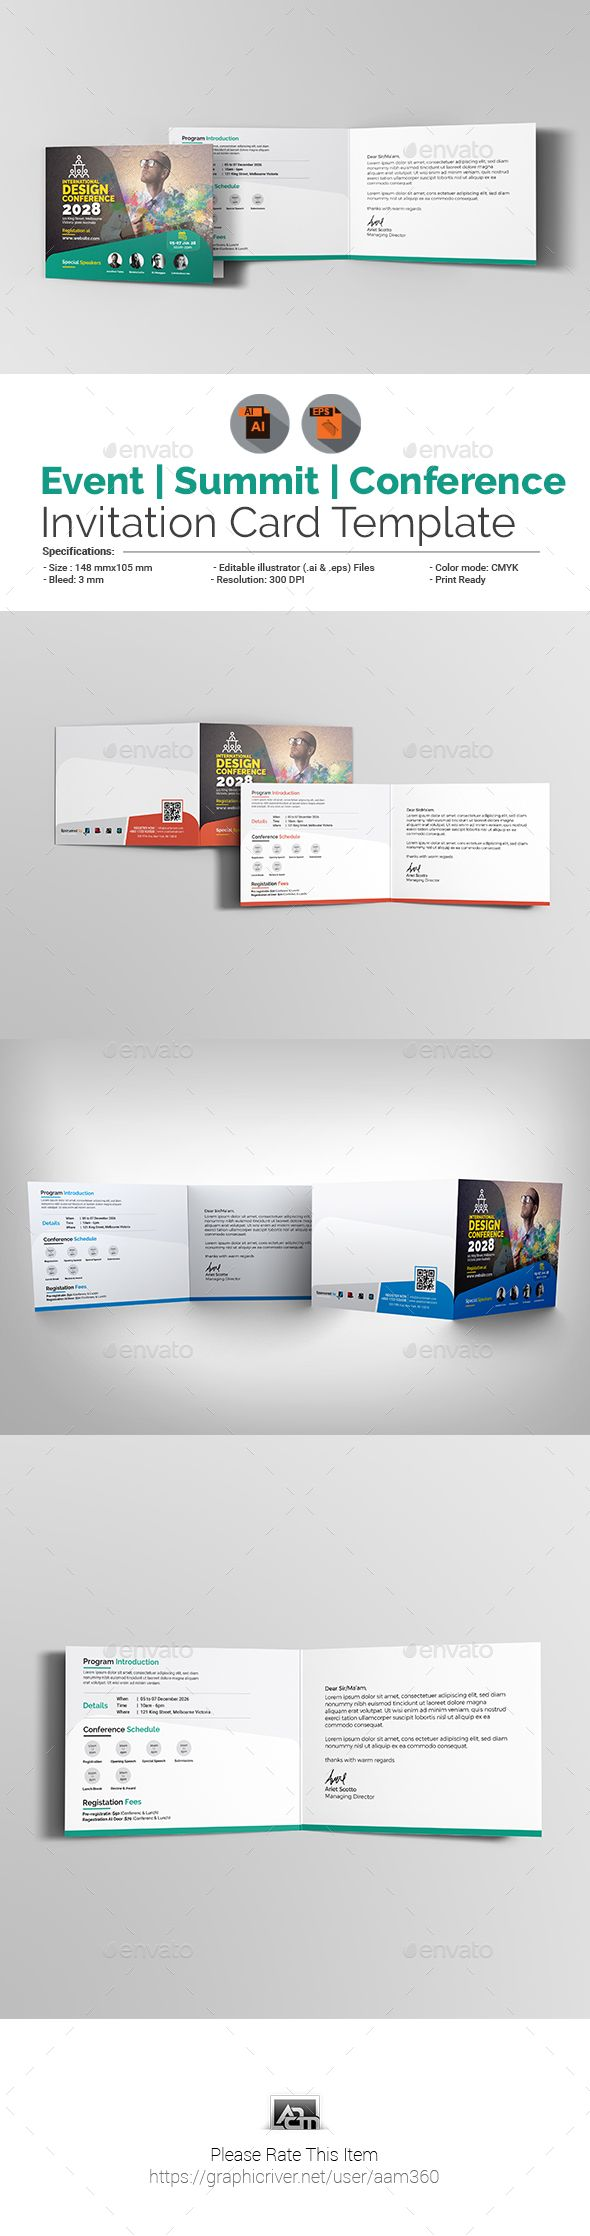 event summit conference invitation card template vector eps ai